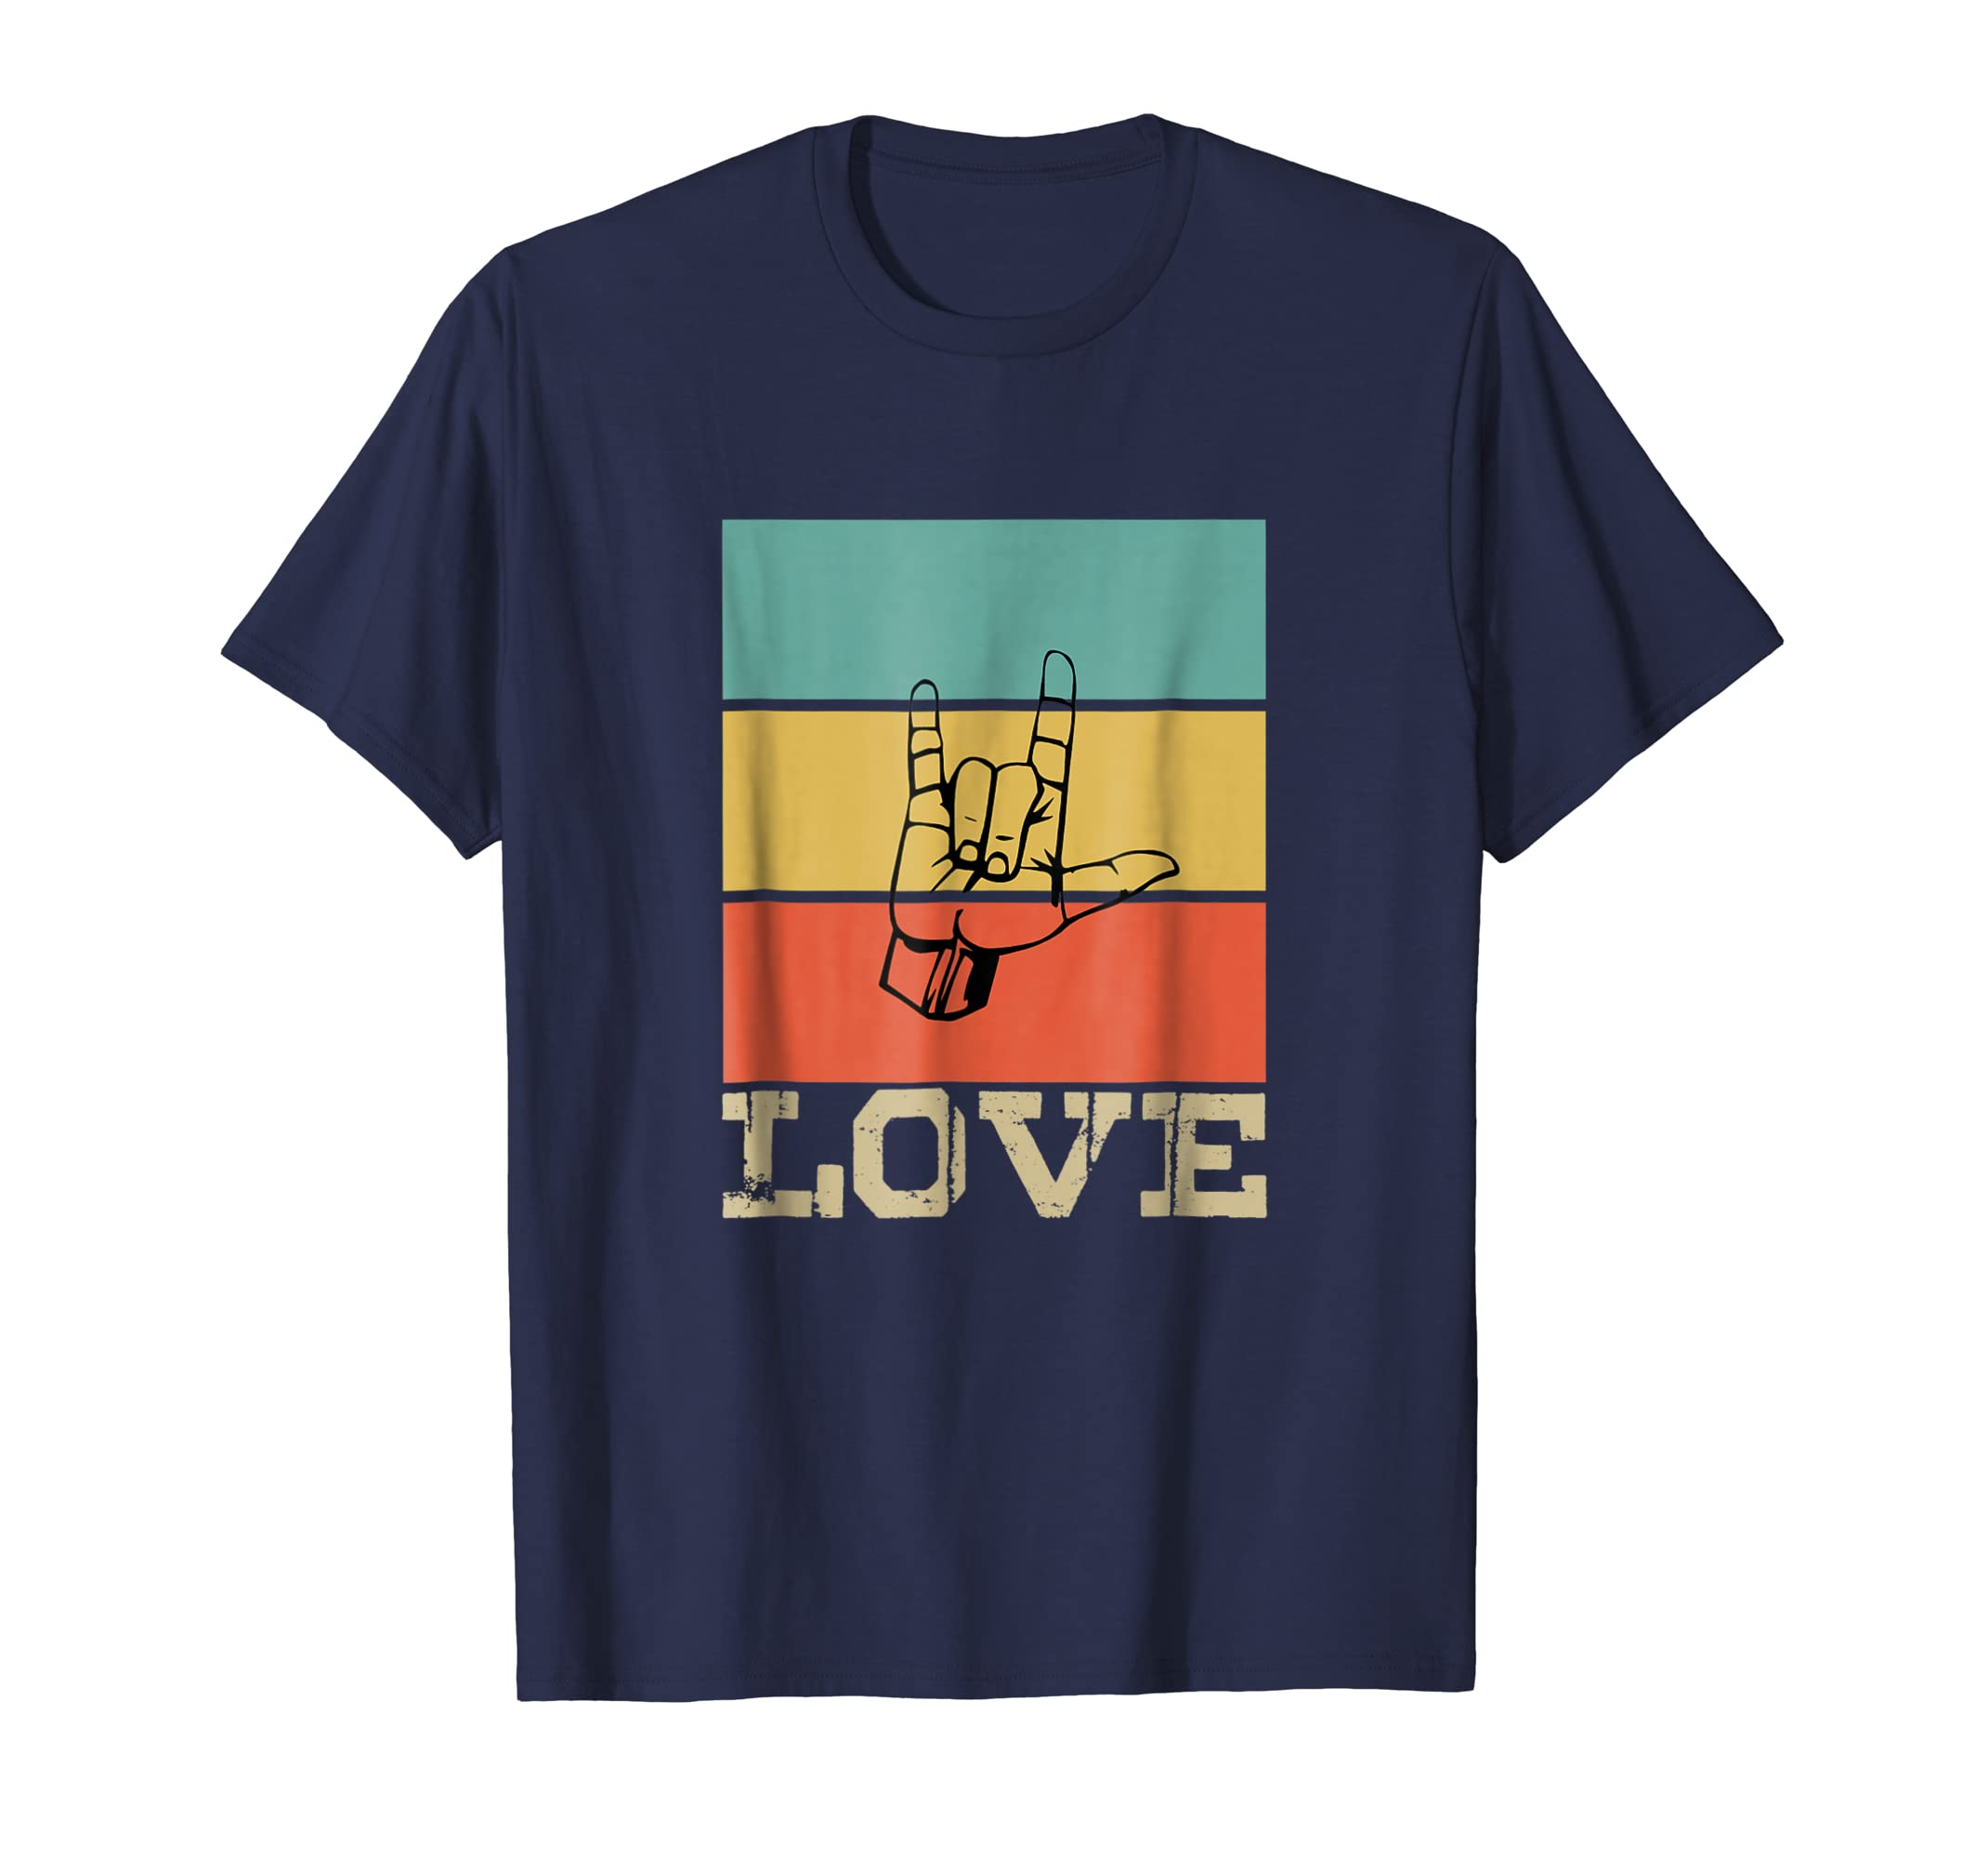 ASL love Vintage Retro T Shirt Gift for Men / Women /Kids-azvn